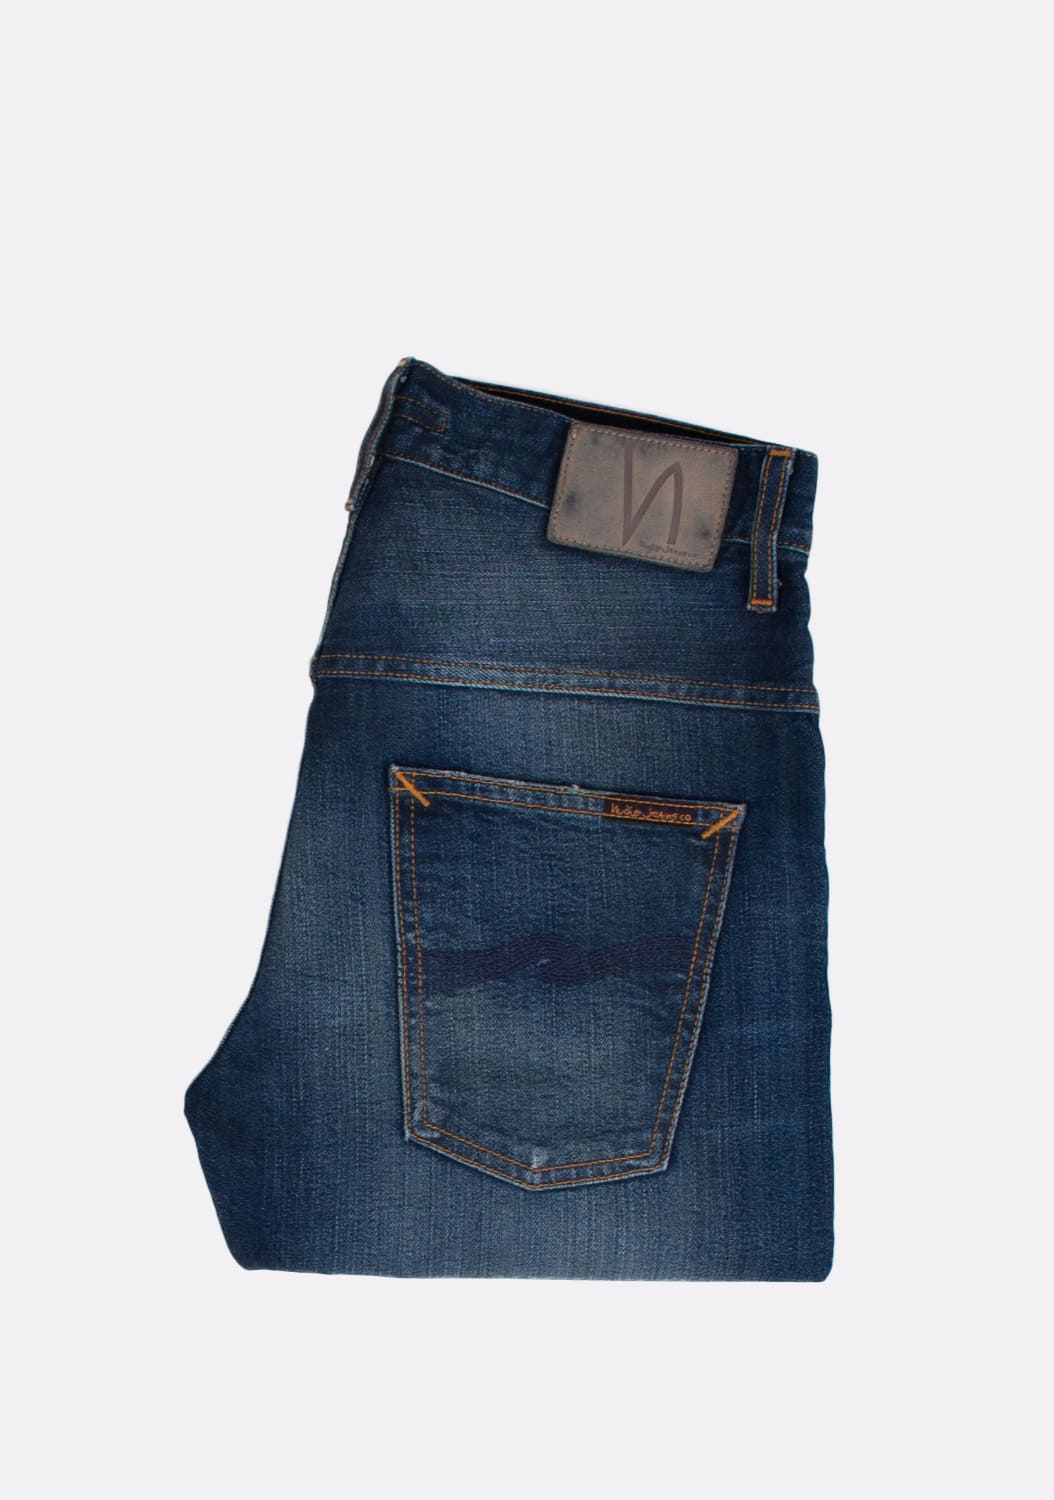 Nudie-Thin-Finn-Jonas-Replica-Selvage-Selvedge-melyni-dzinsai-dydis-31-32 (1)